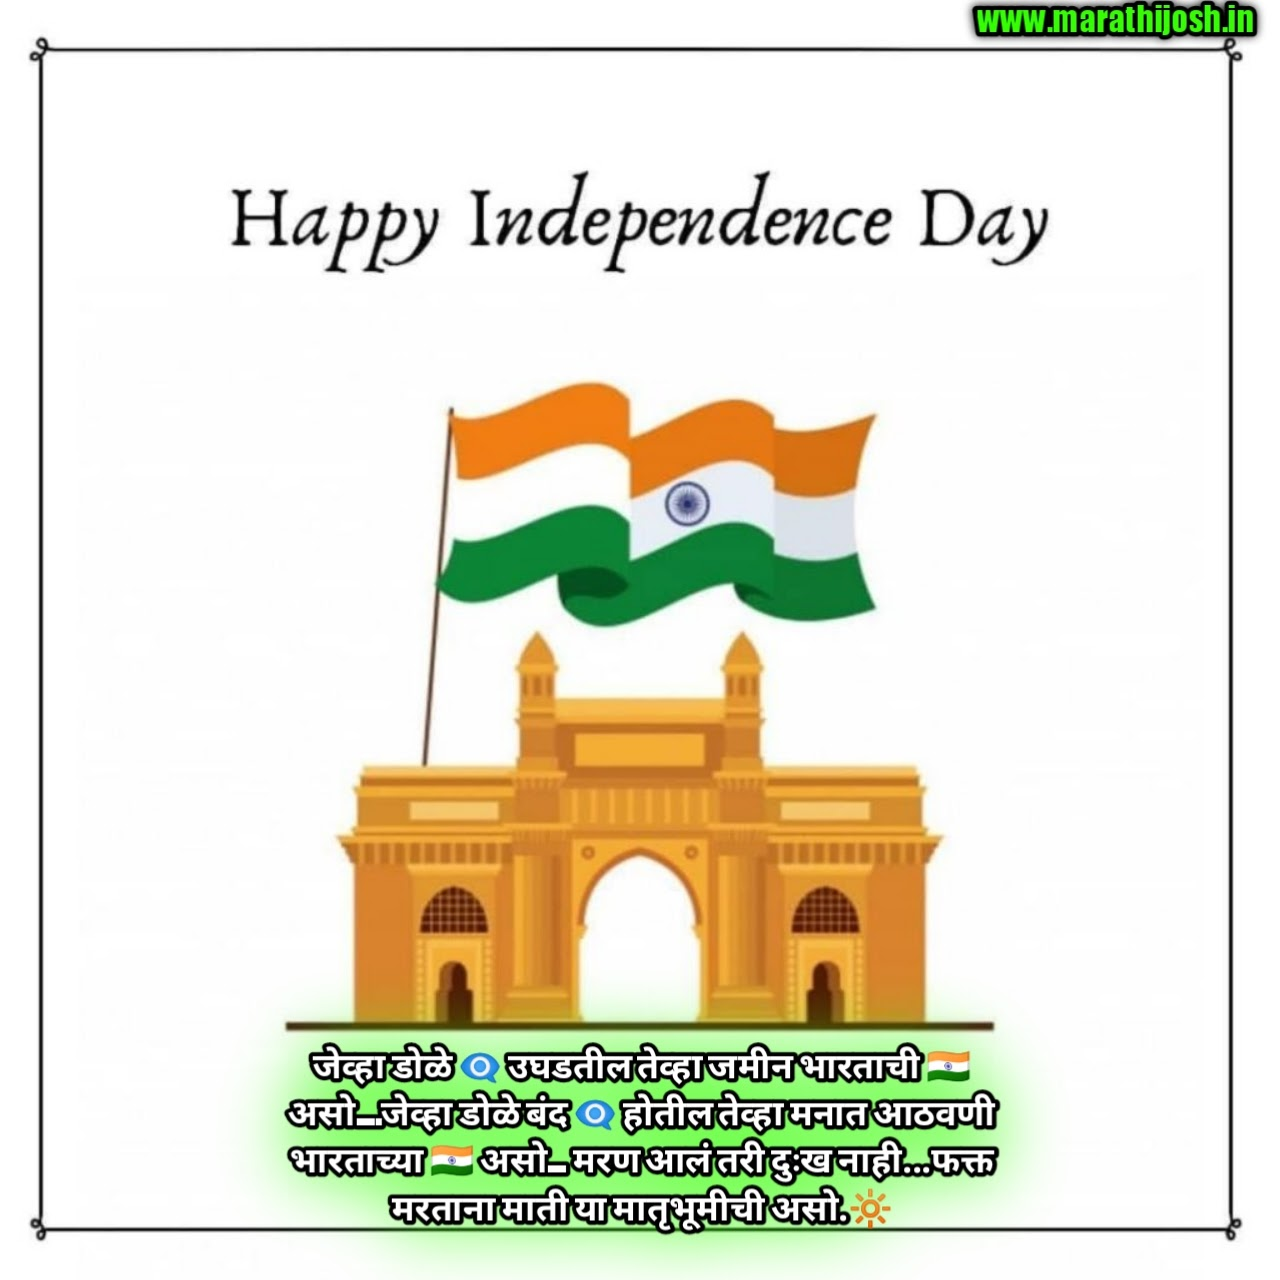 Happy Independence Day Wishes In Marathi